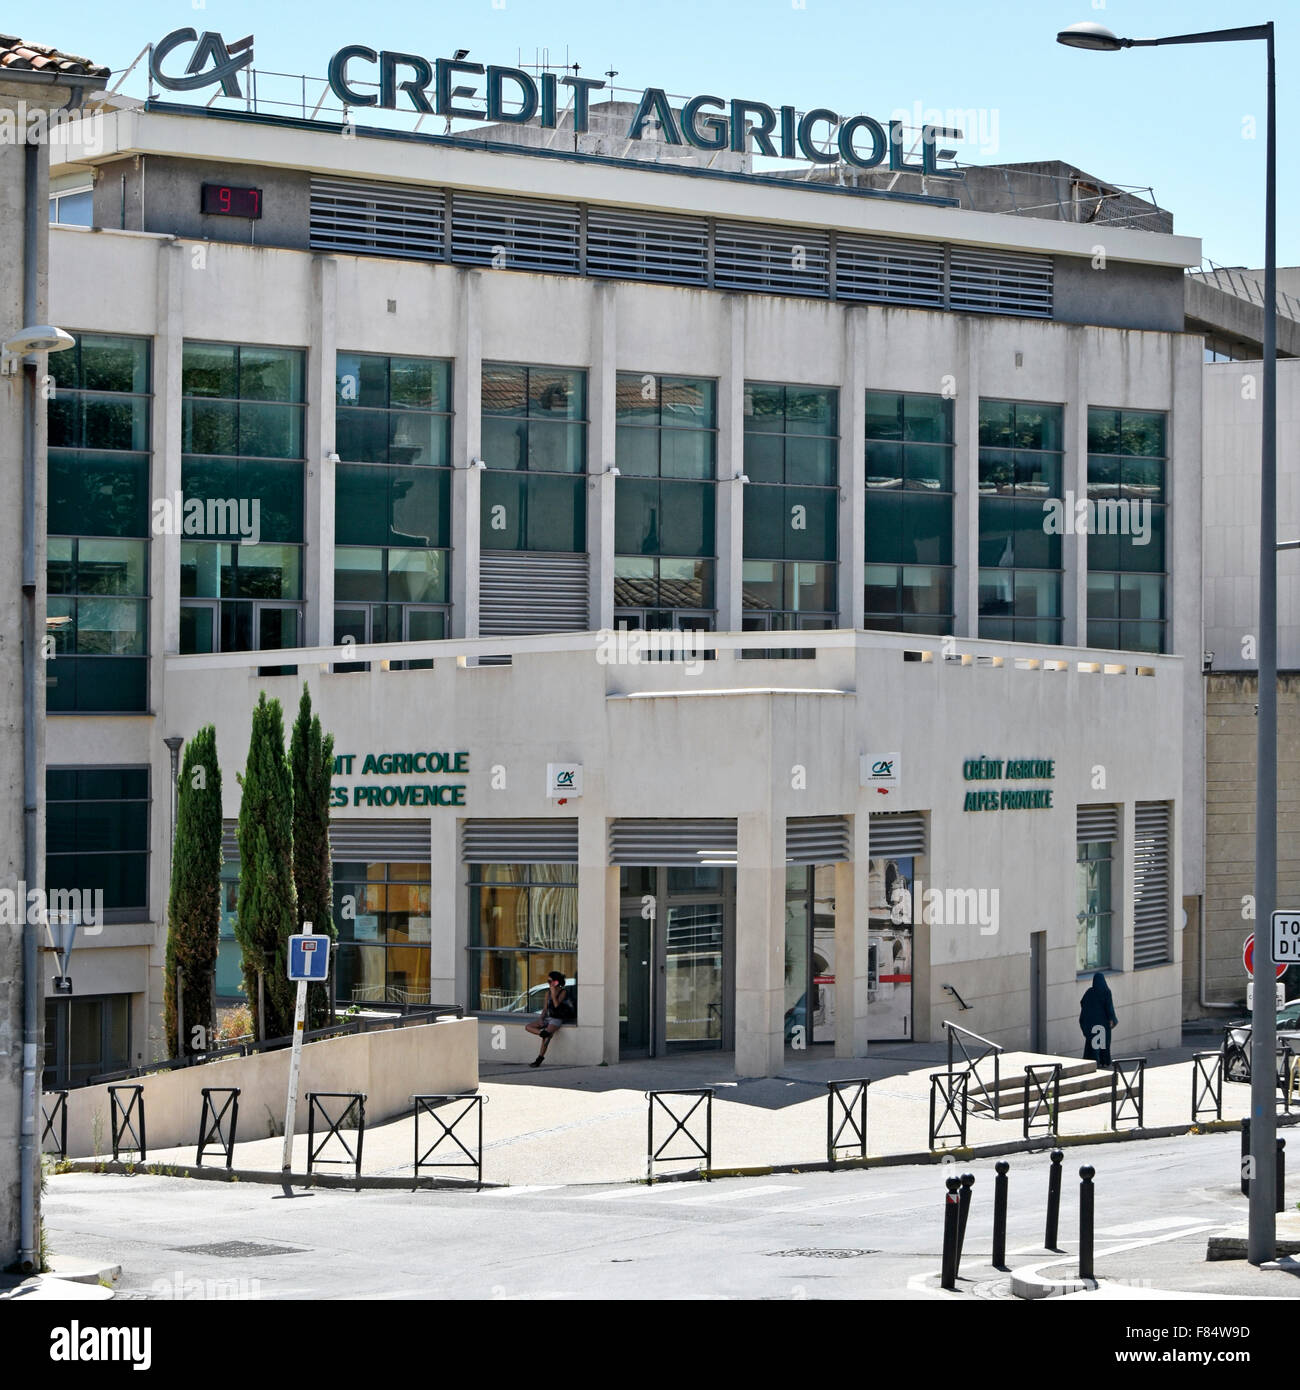 Arles Provence France Credit Agricole bank and offices in Stock     Arles Provence France Credit Agricole bank and offices in Bouches du Rh    ne  Provence Alpes C    te d Azur